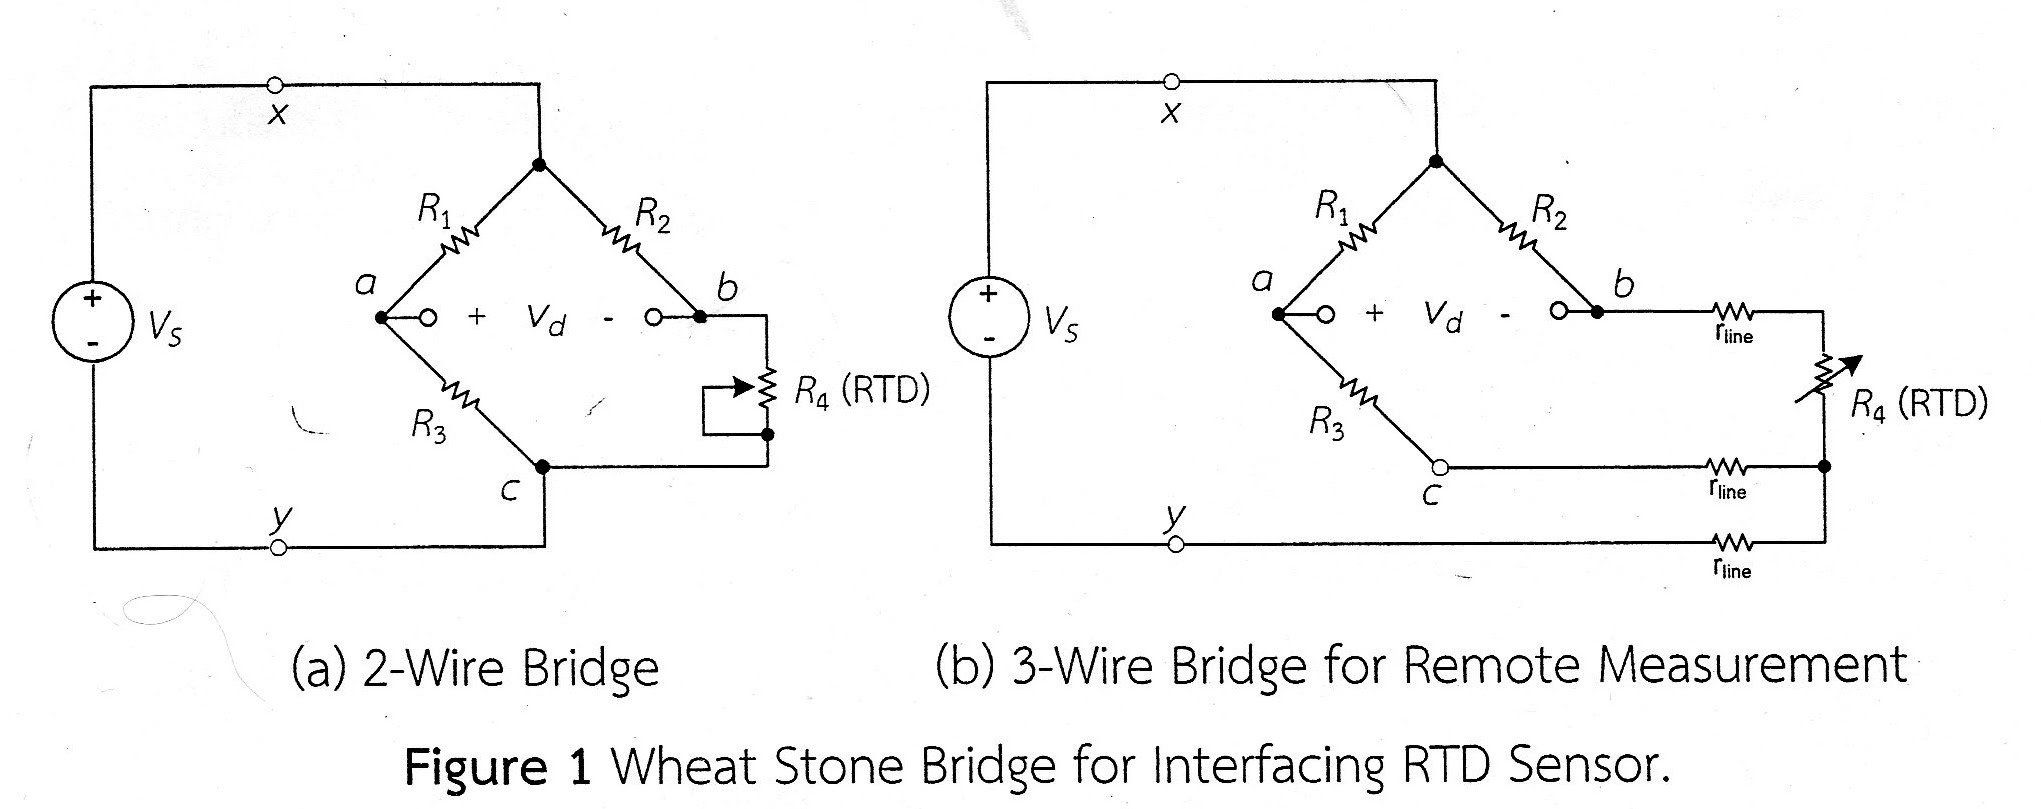 labiv op amp signal conditioning circuit for 3 wire rtd bridgeWheatstone Bridge Single Op Amp Circuit Diagram #5